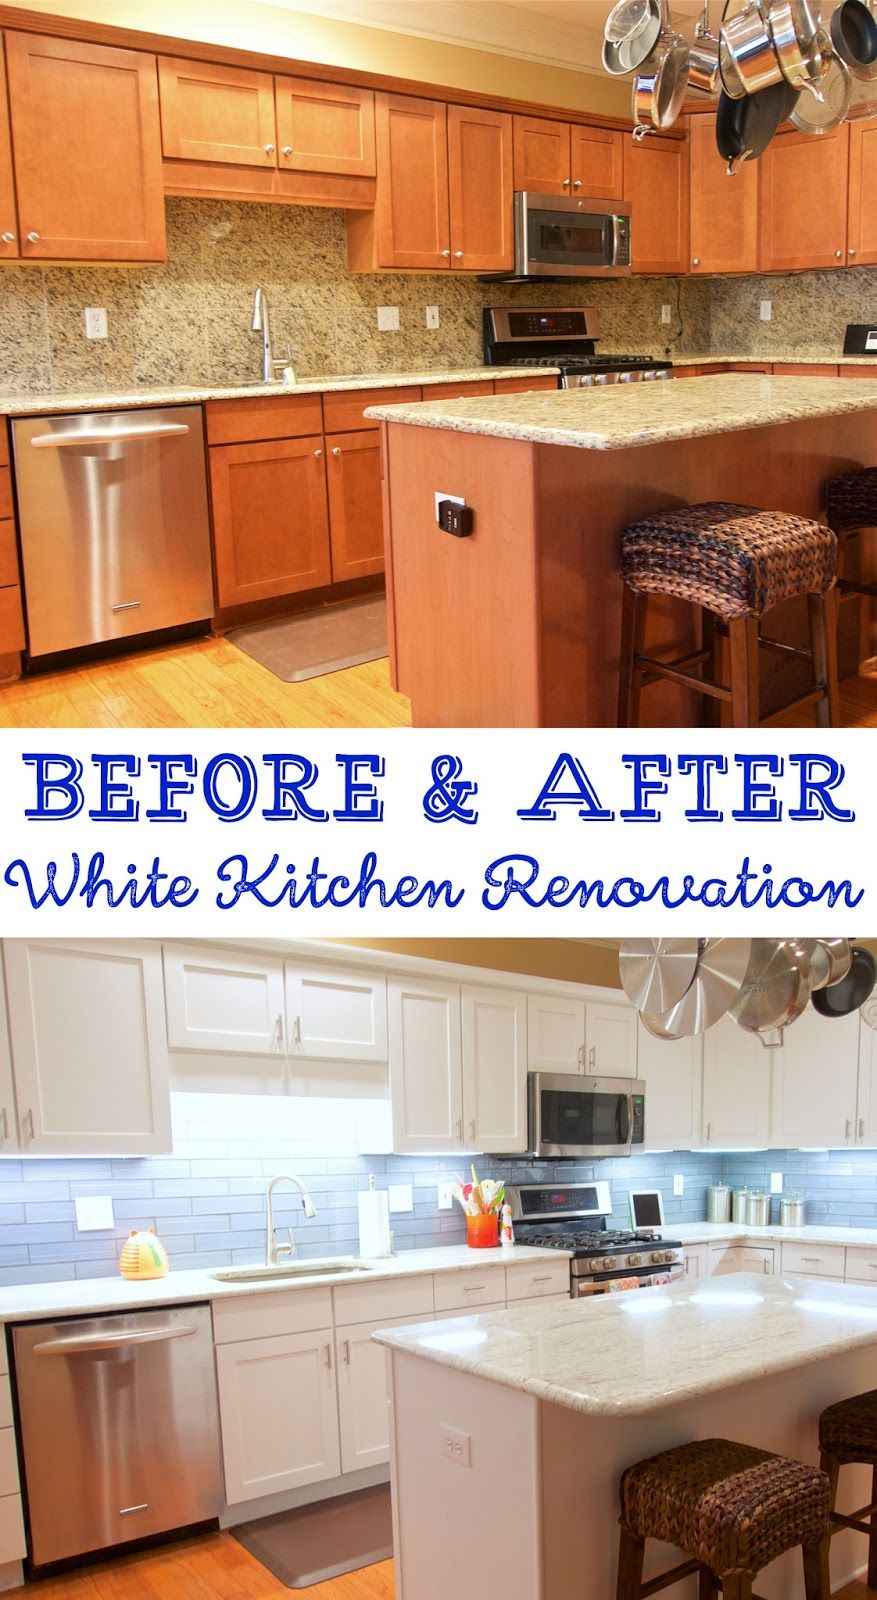 Before And After White Kitchen Renovation Painted Cabinets